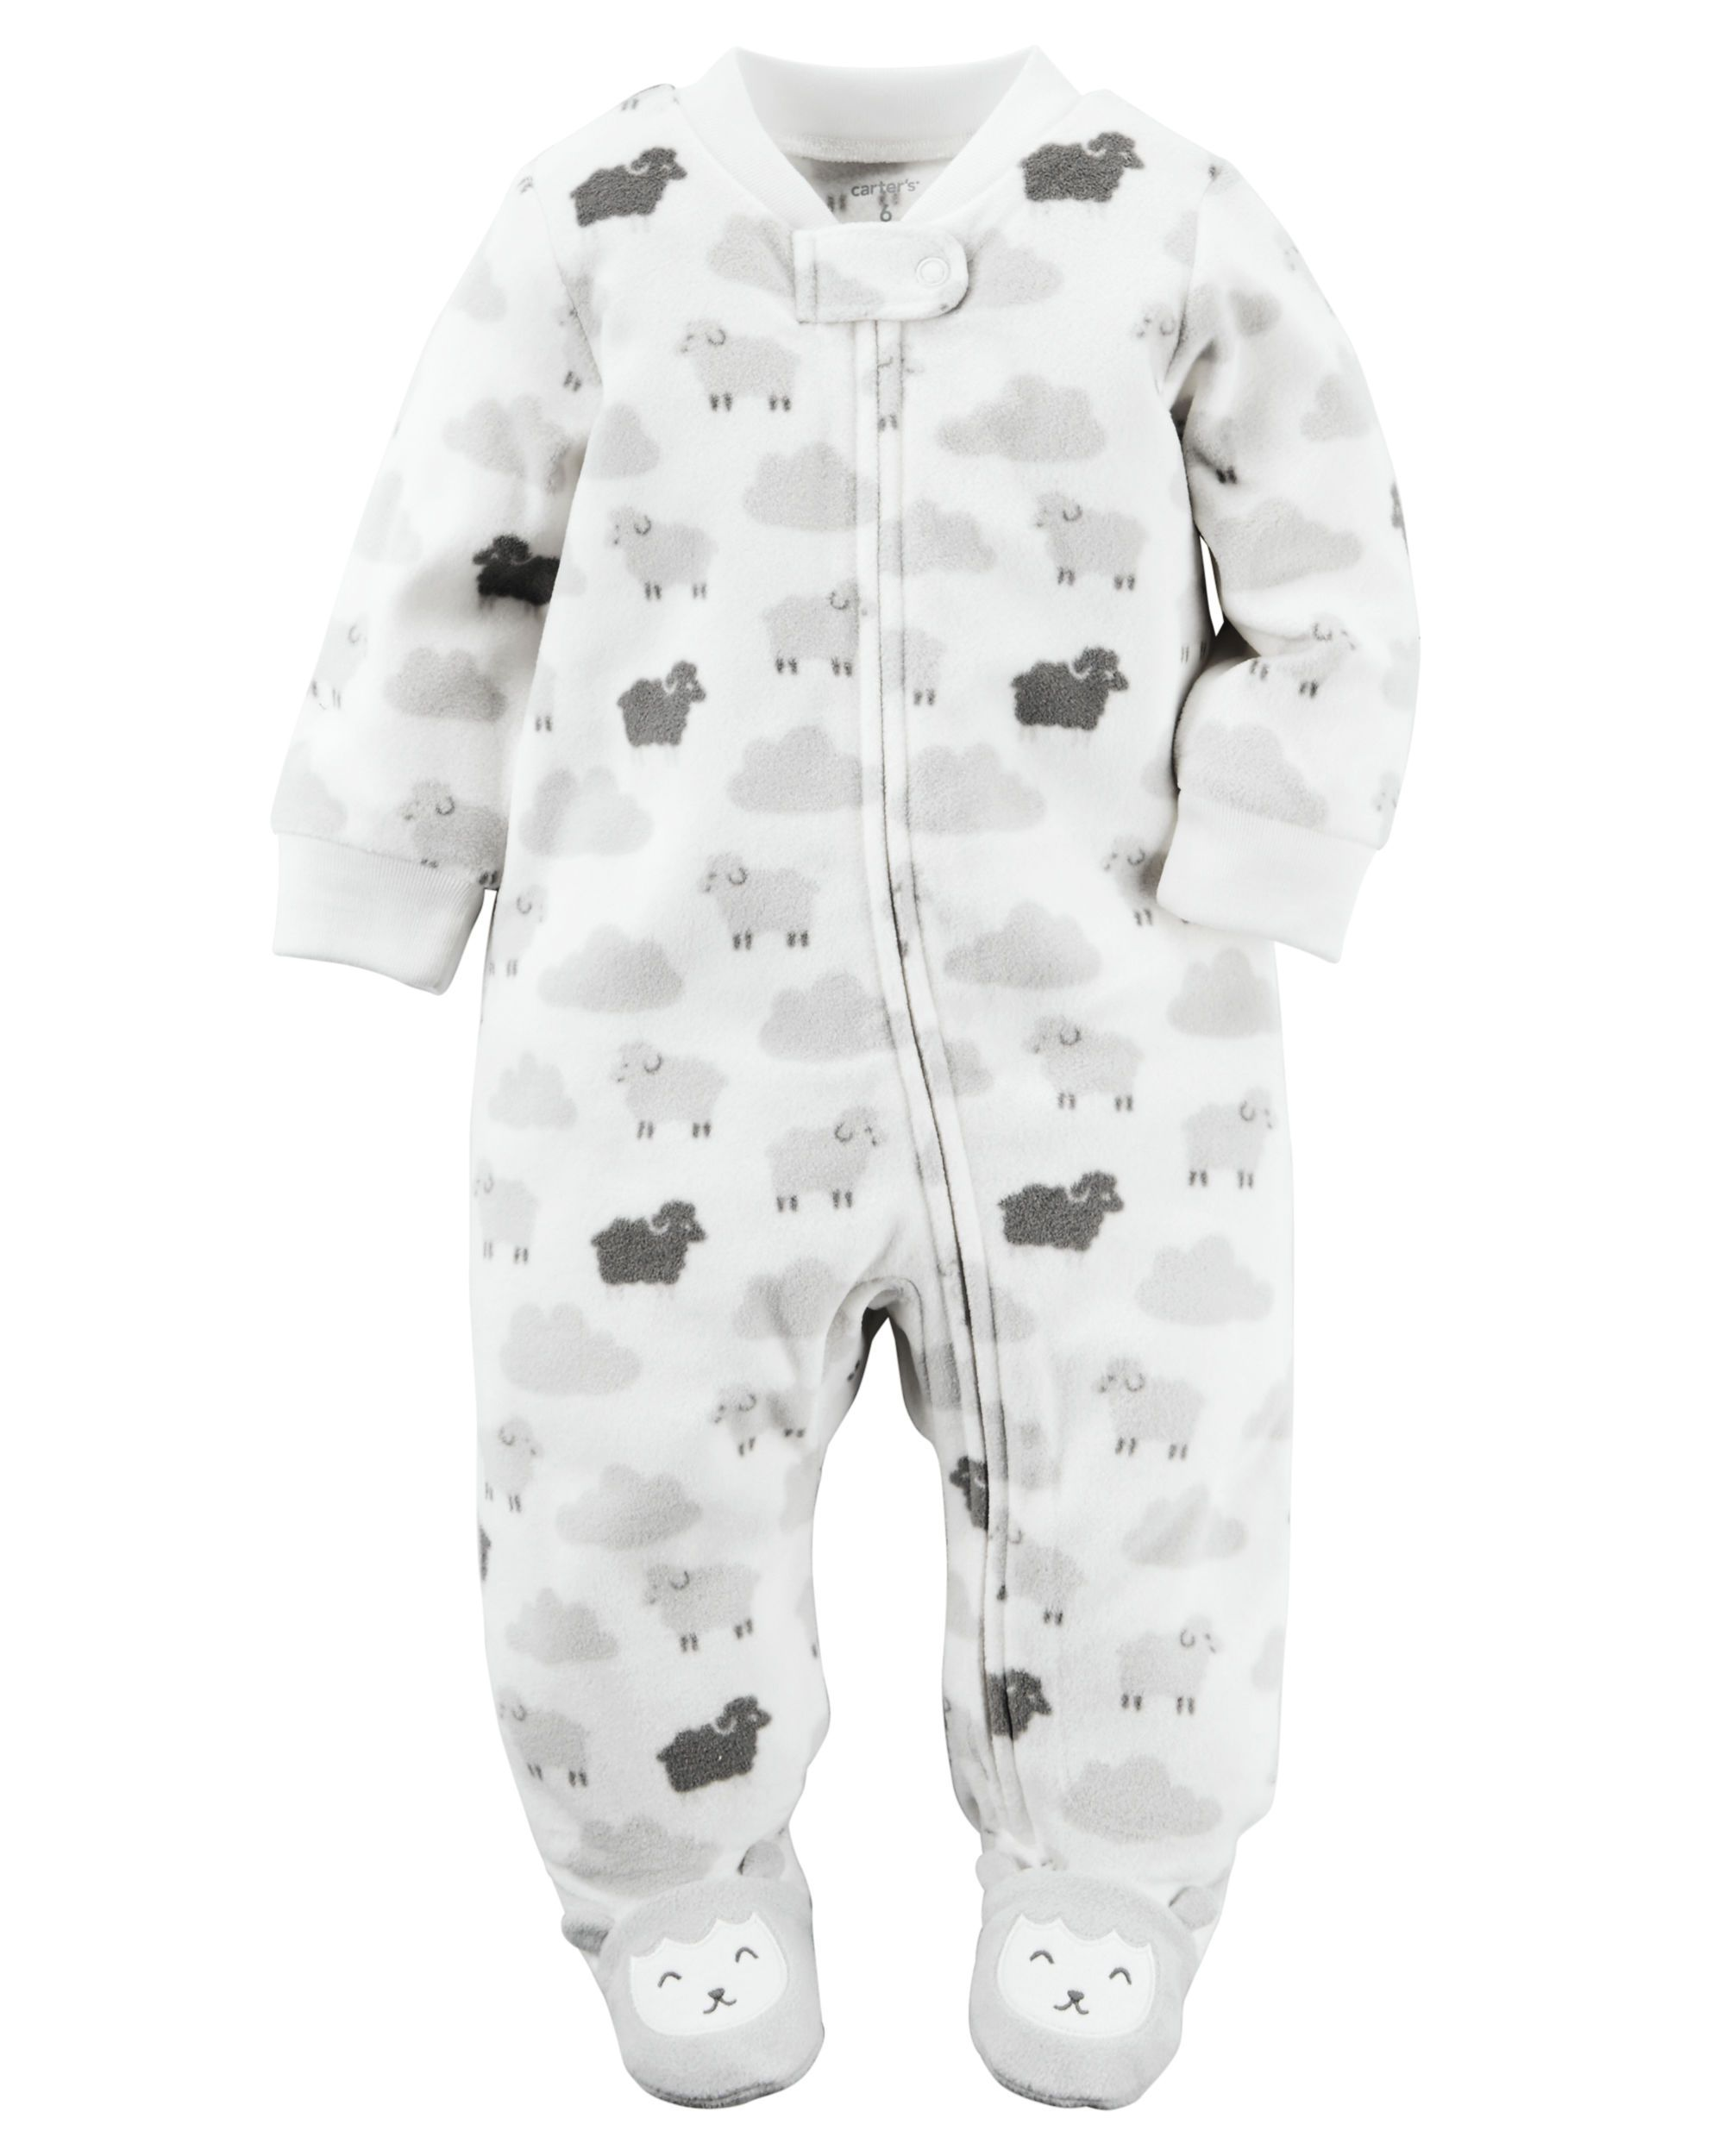 Fleece Zip Up Sleep Play Babies Clothes Babies And Baby Things